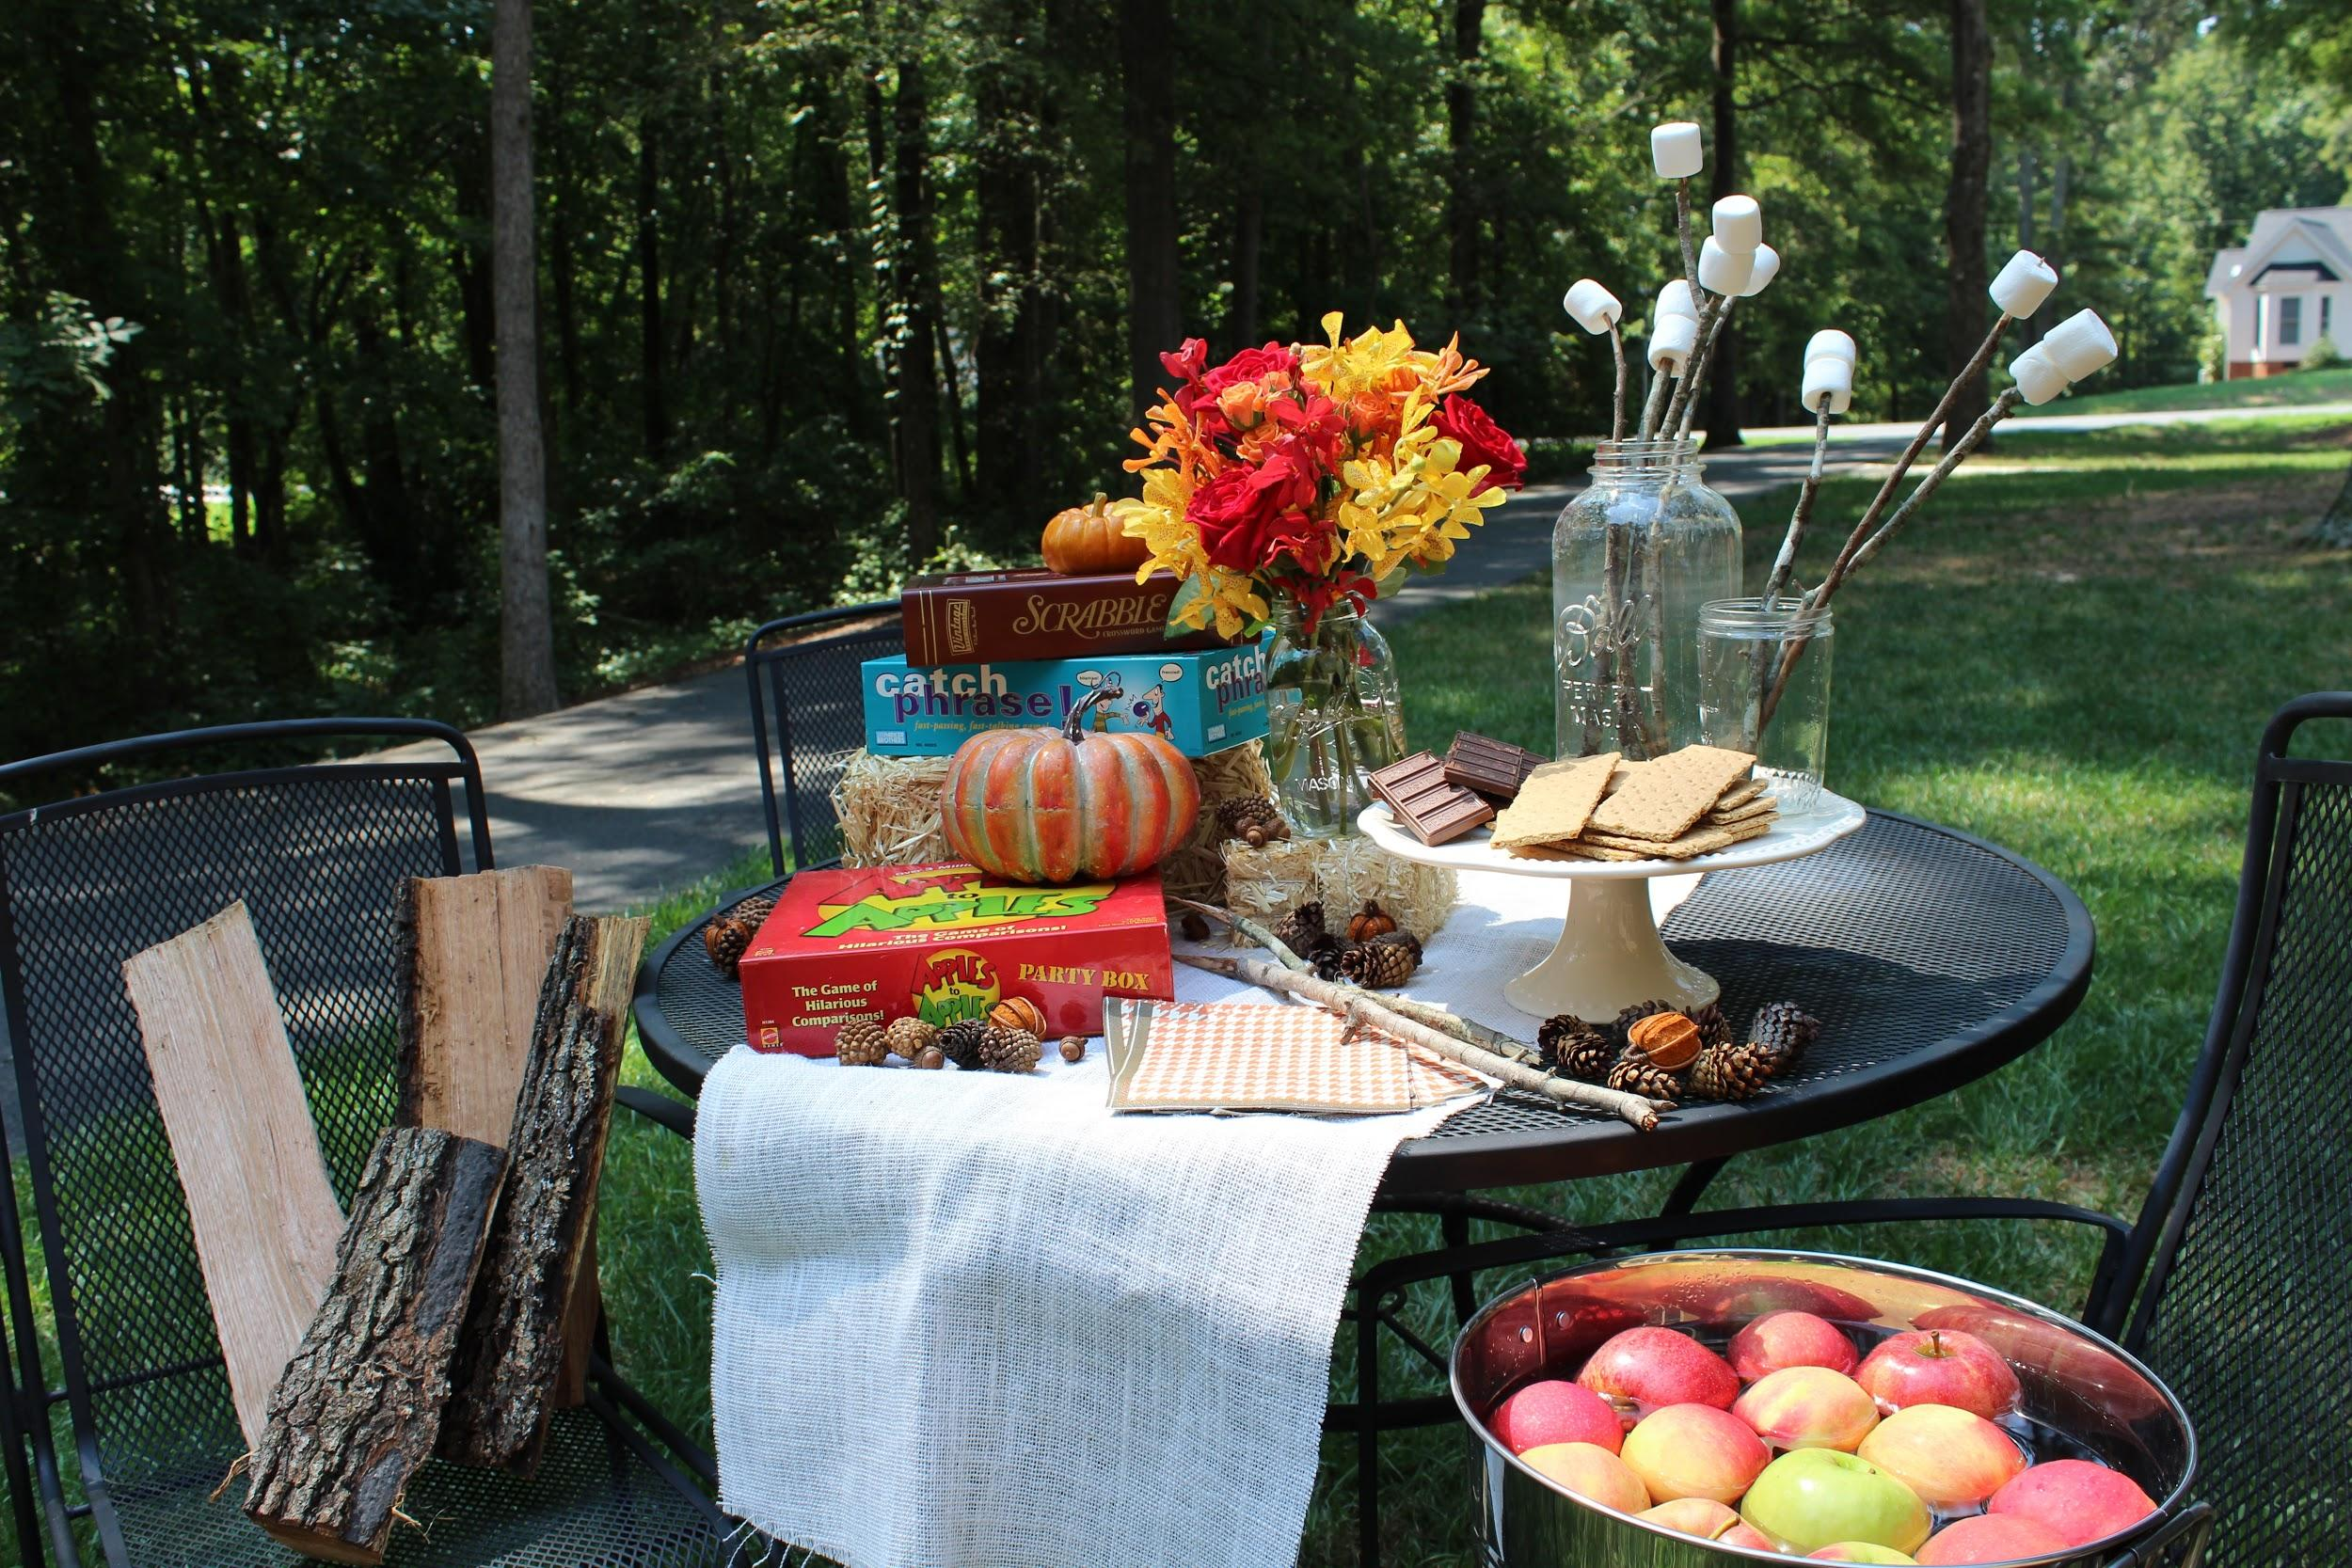 autumn party games and decorations on table outside